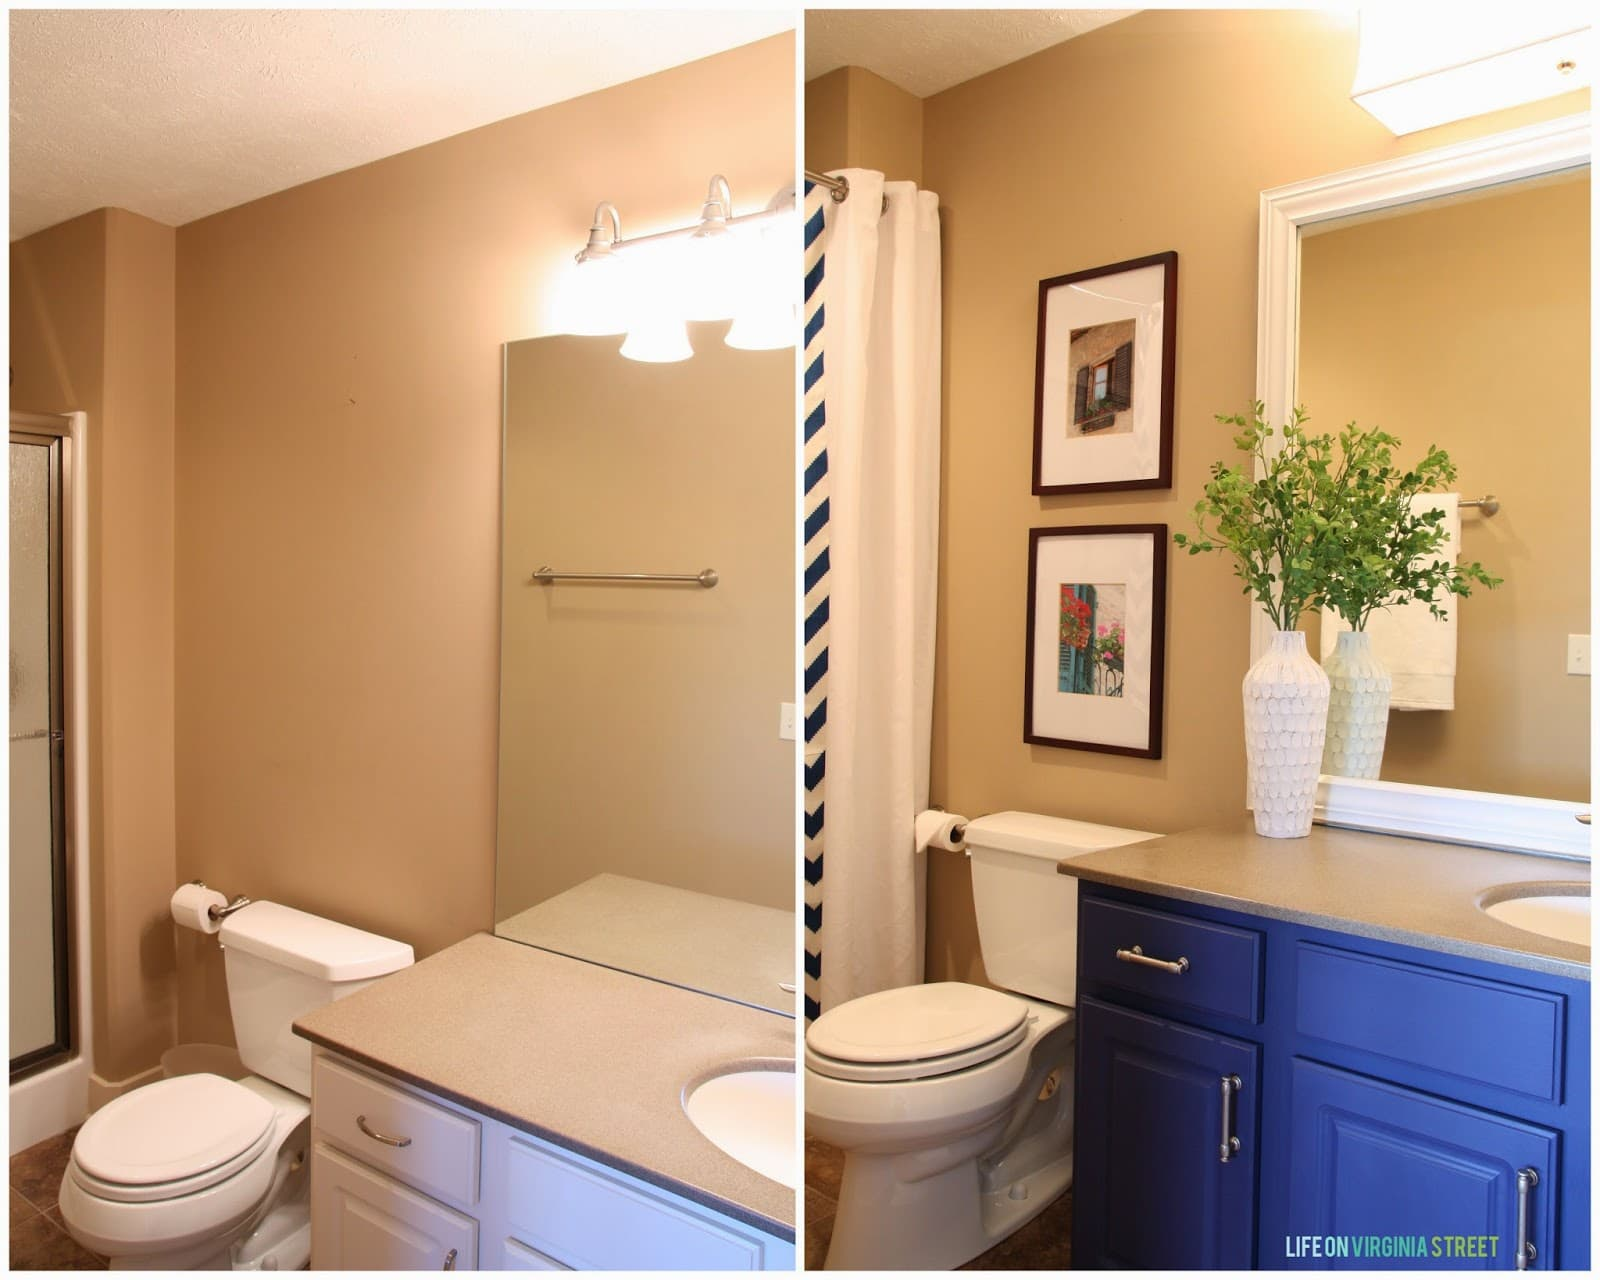 Guest bathroom tutorials lighting framing a builder grade mirror guest bathroom lighting and framing a builder grade mirror details arubaitofo Choice Image